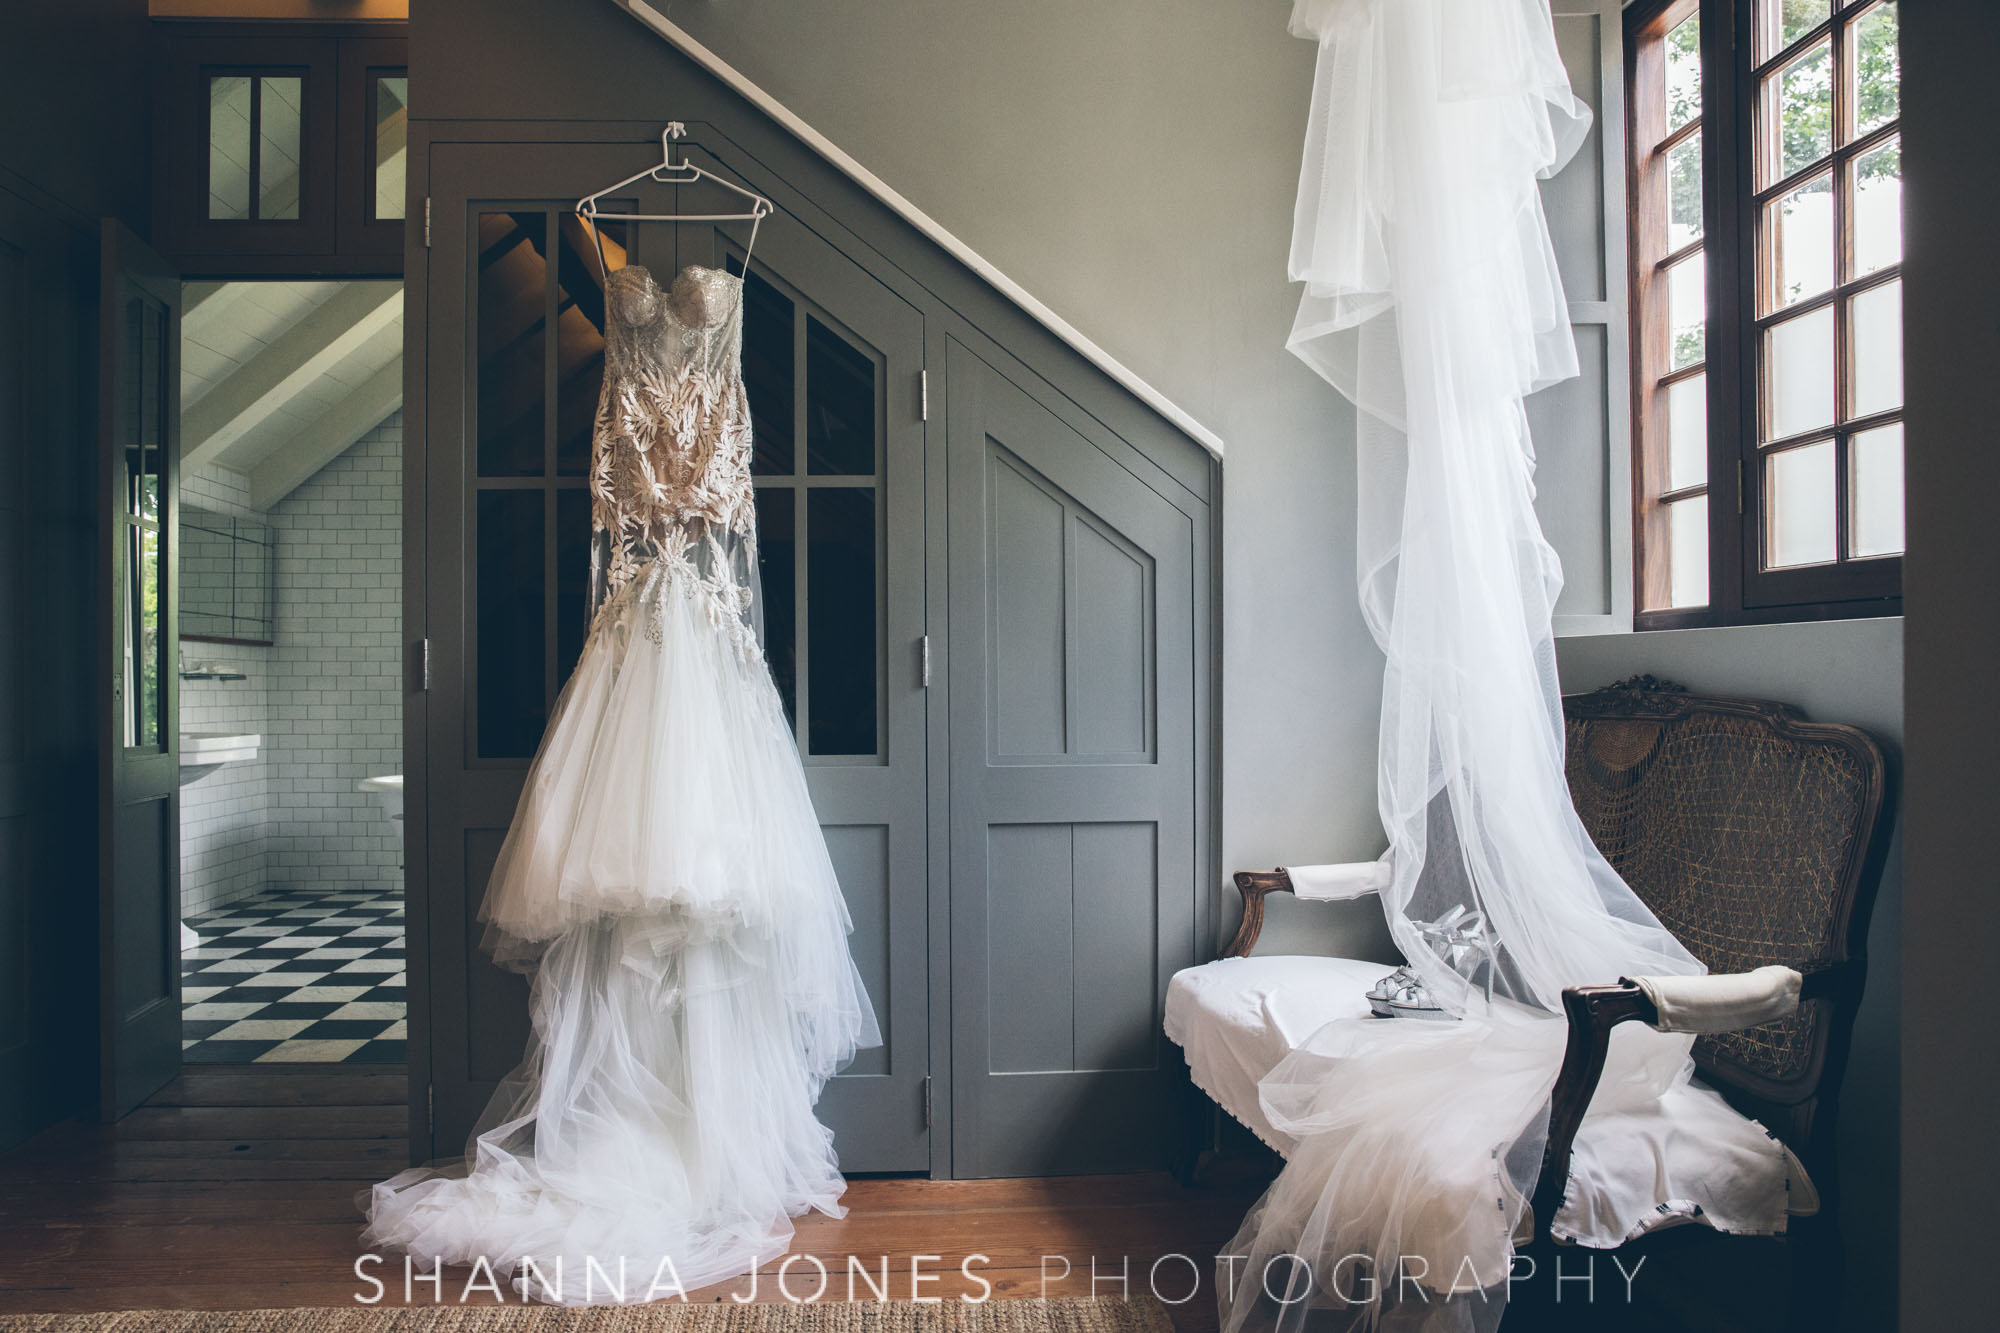 anura-cape-town-wedding-shanna-jones-photography-danna-paul-12.jpg